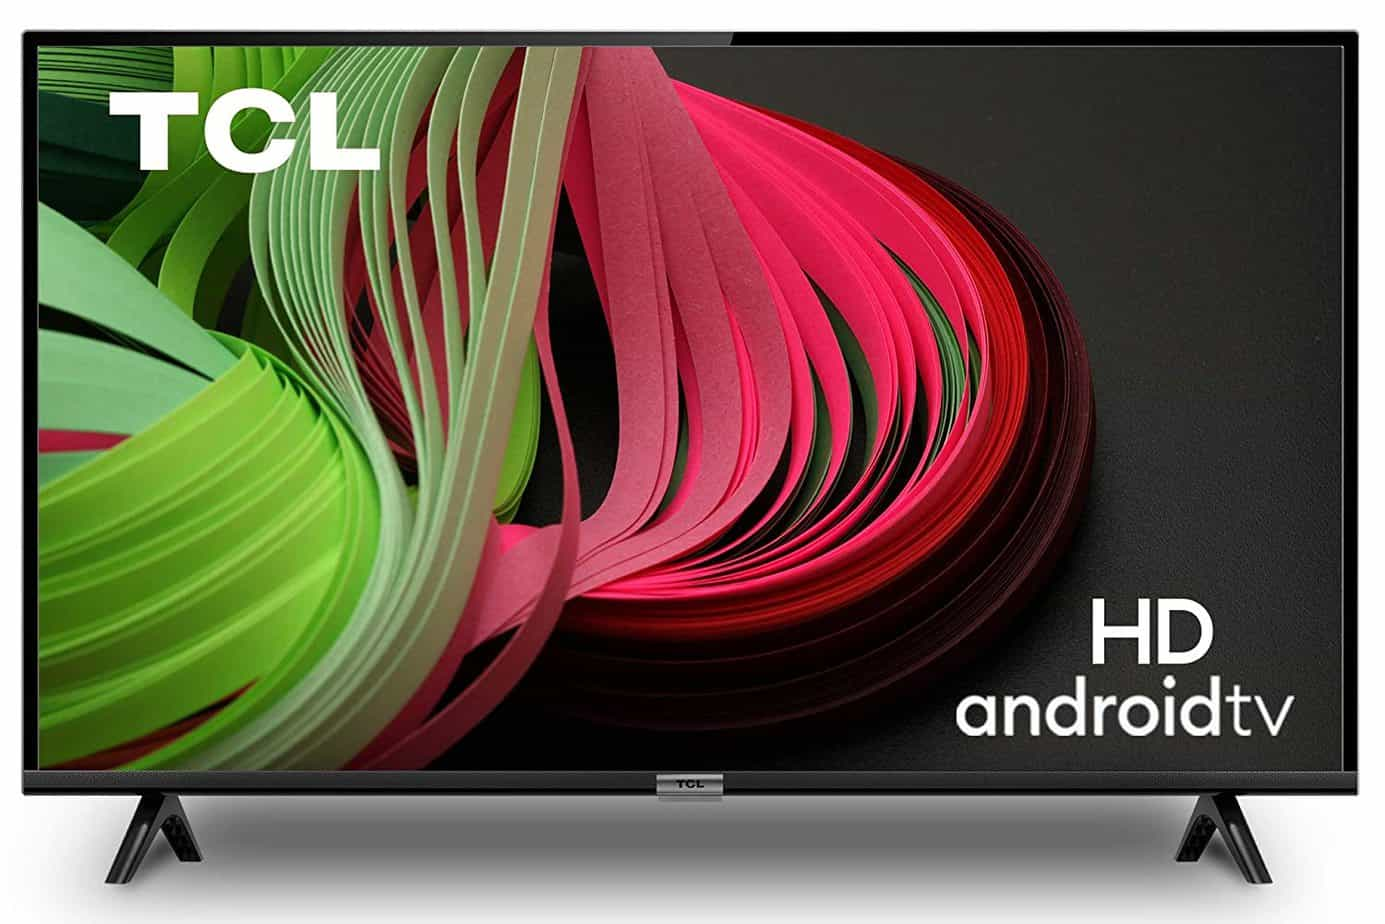 Certified HD Android TV from TCL